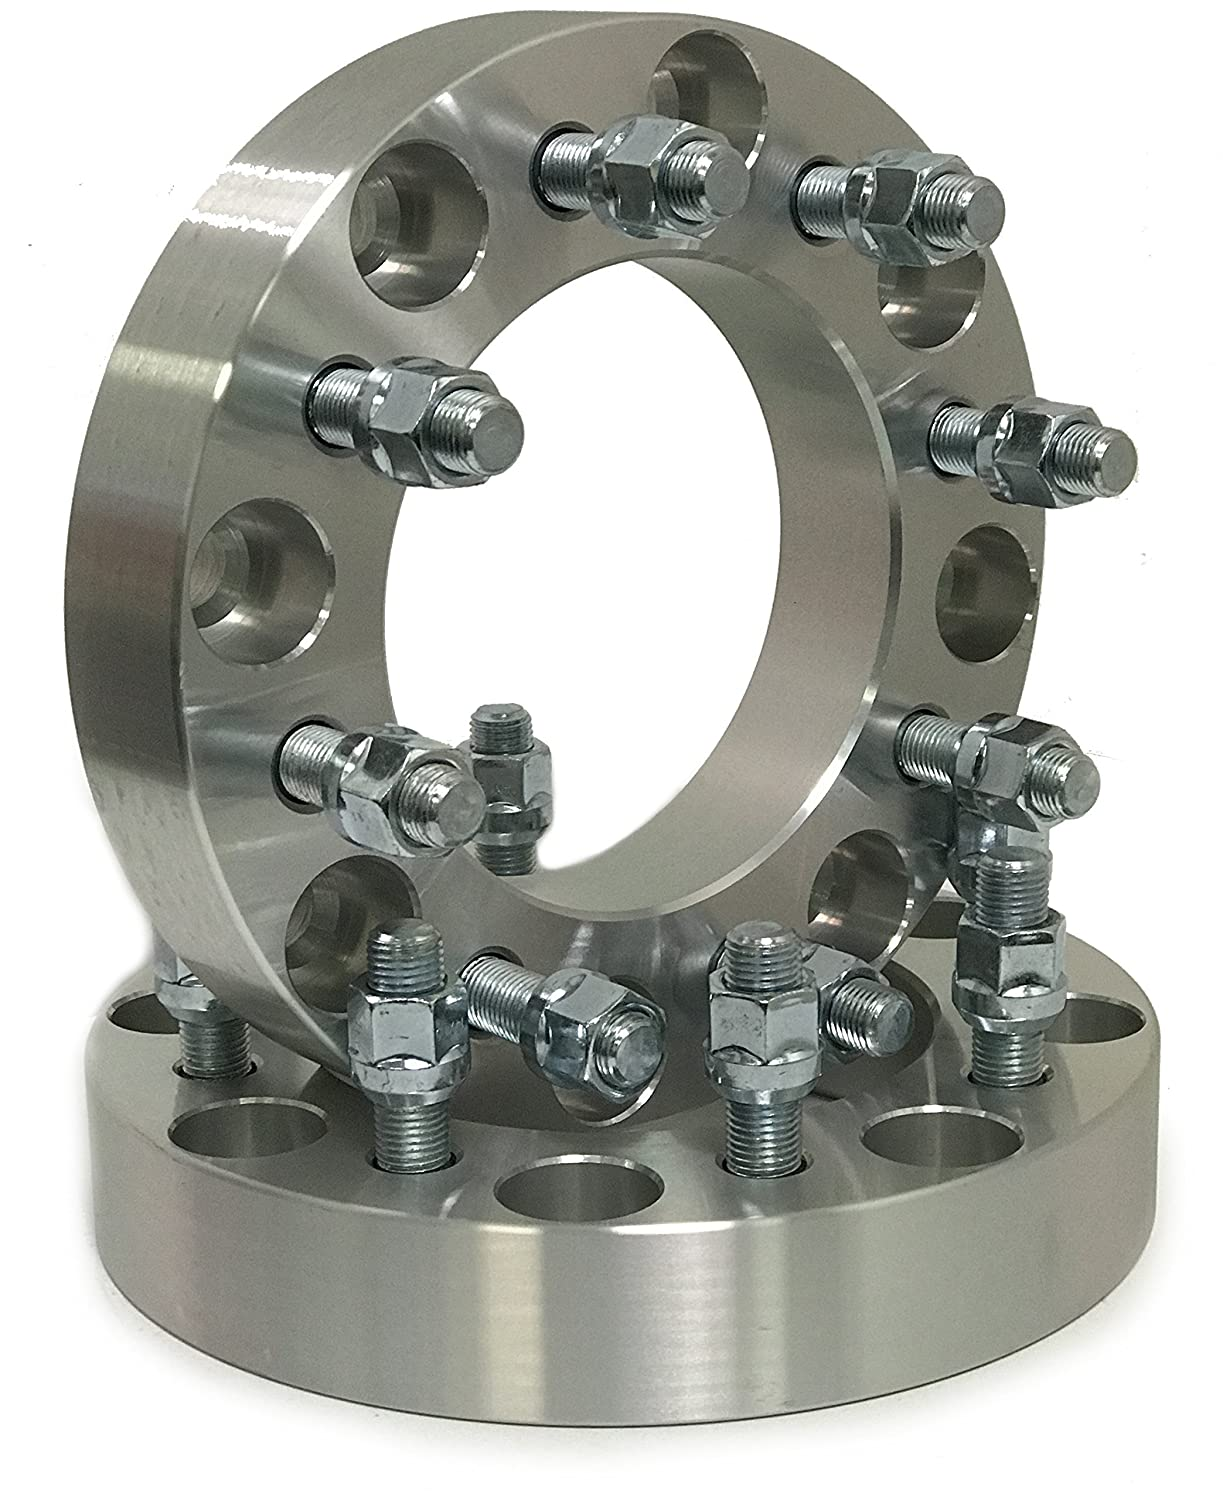 Supreme Engineering Technologies 8x180 to 8X6.5 Wheel ADAPTERS 1.5 USE 8X6.5 Wheels ON 8X180 Chevy GMC Truck